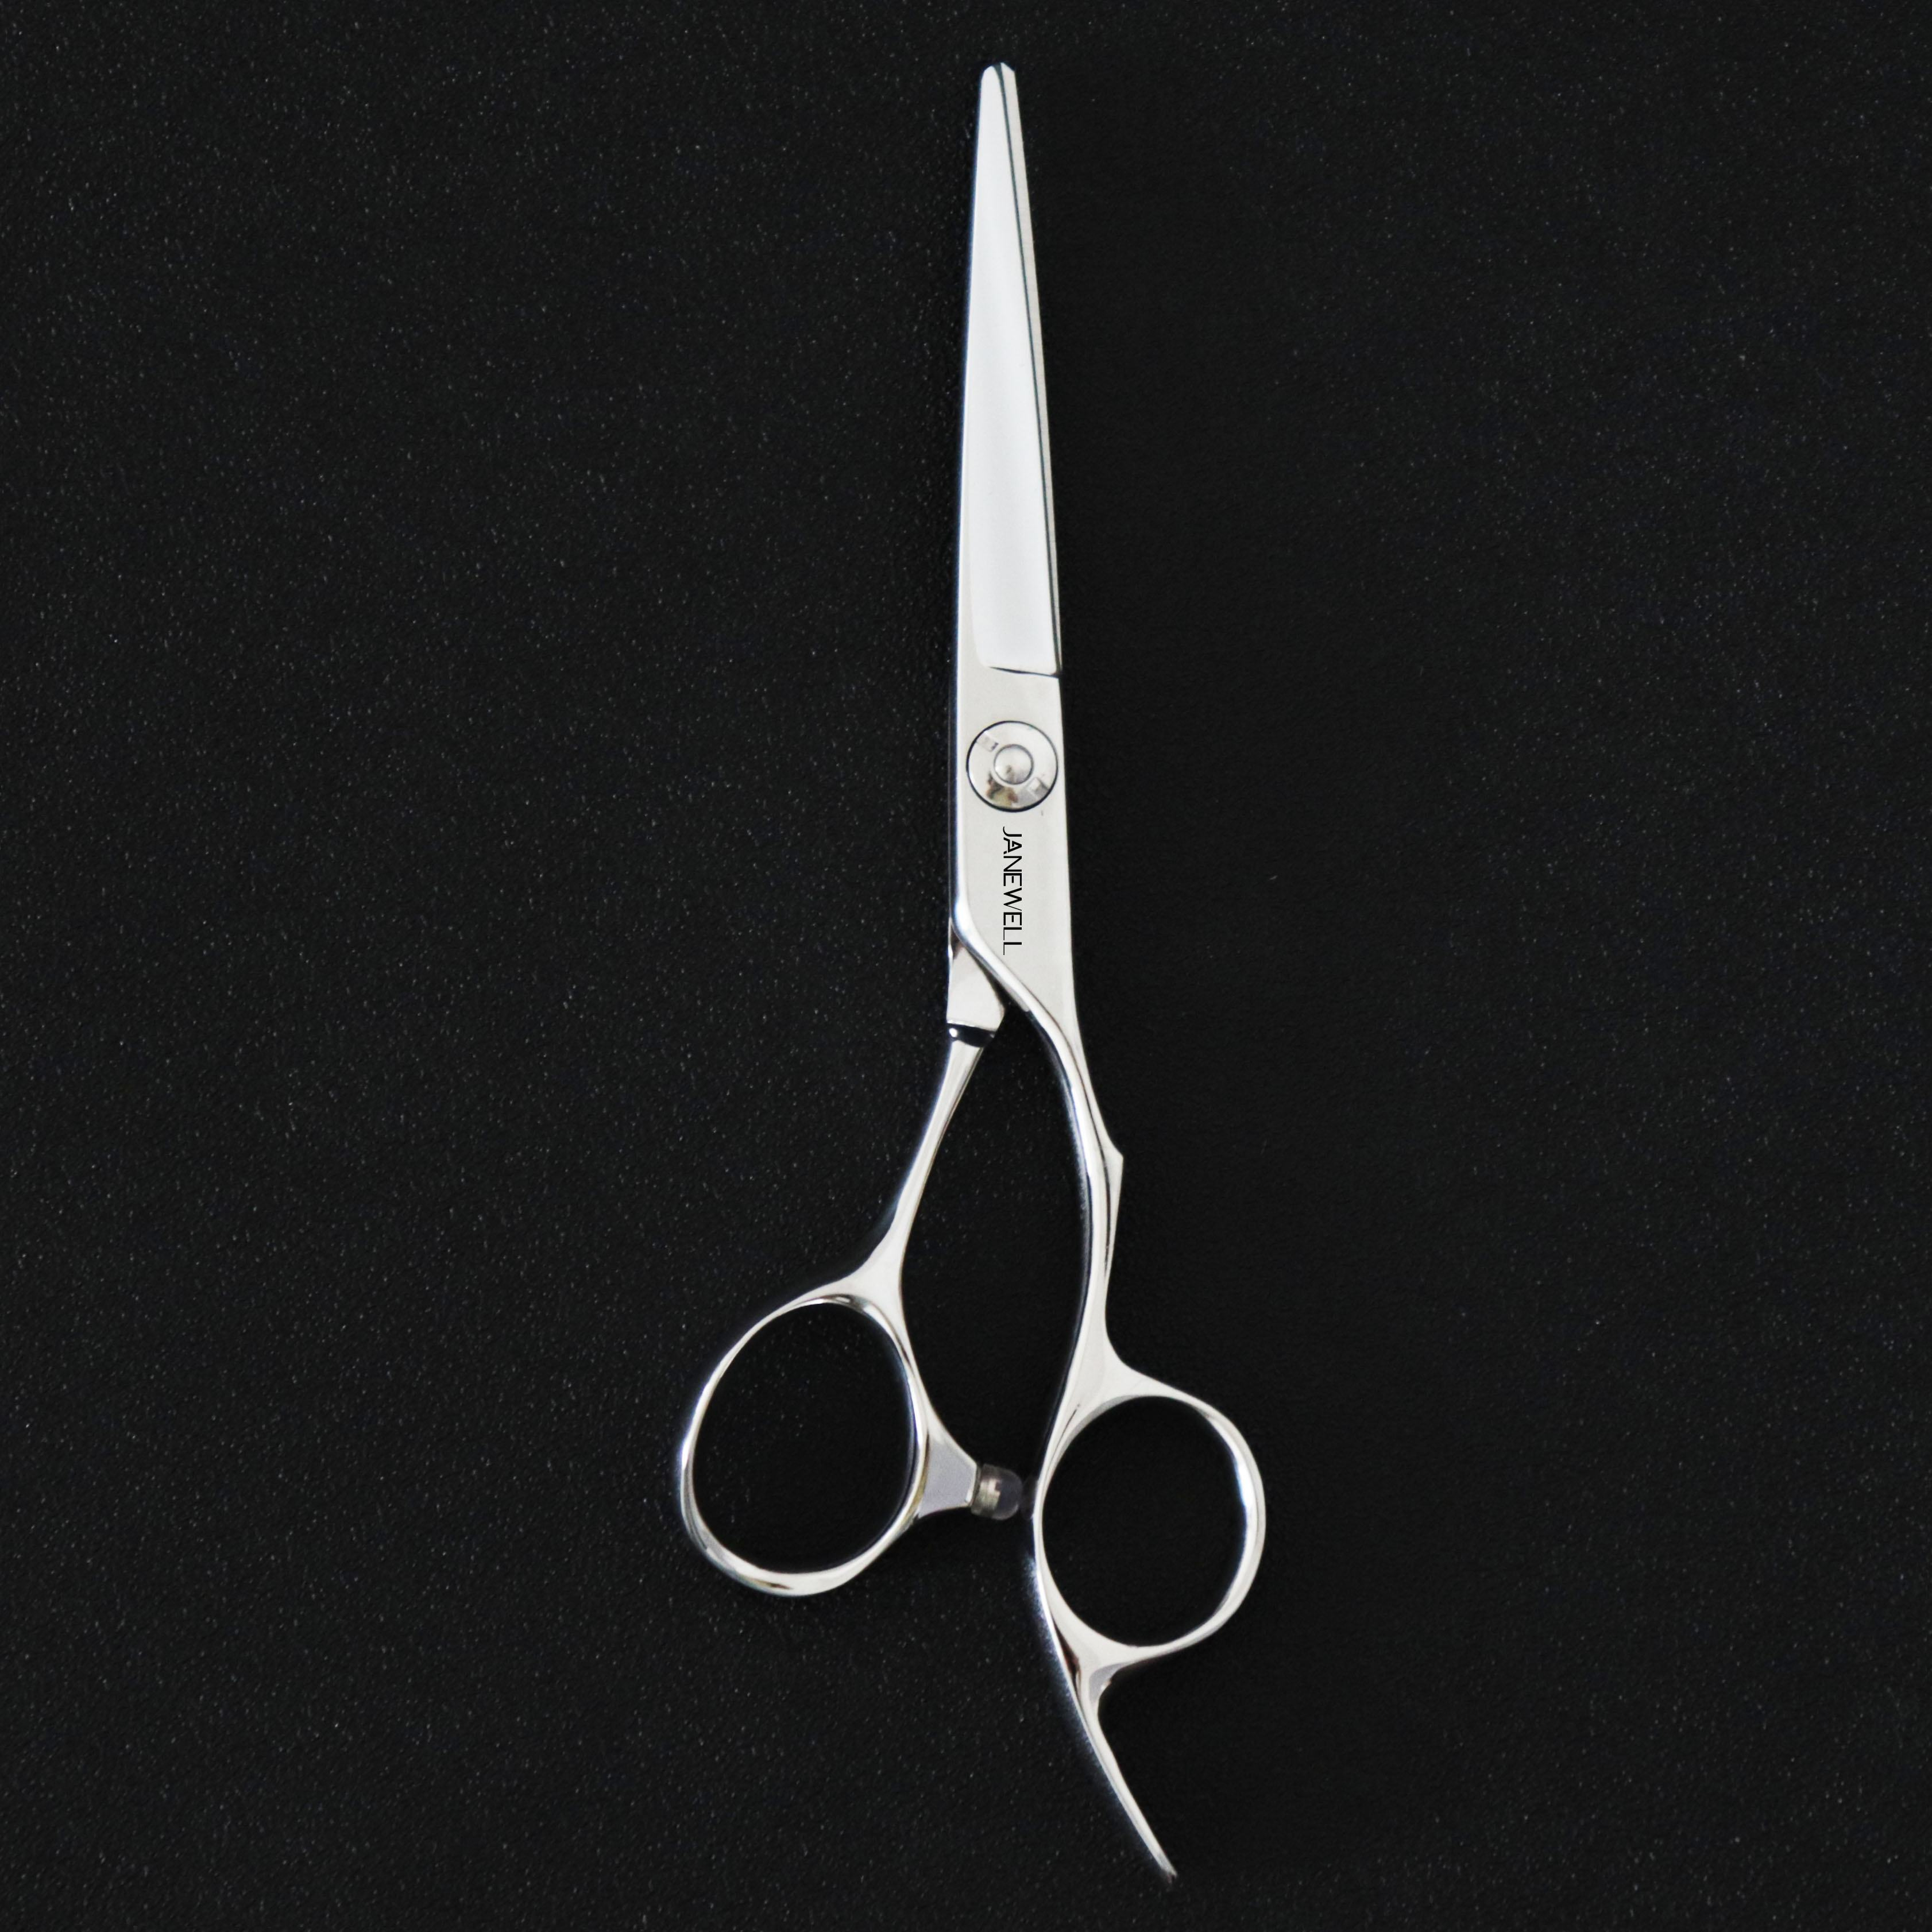 Top seller professional hair scissors japan vg10 hair cutting scissors